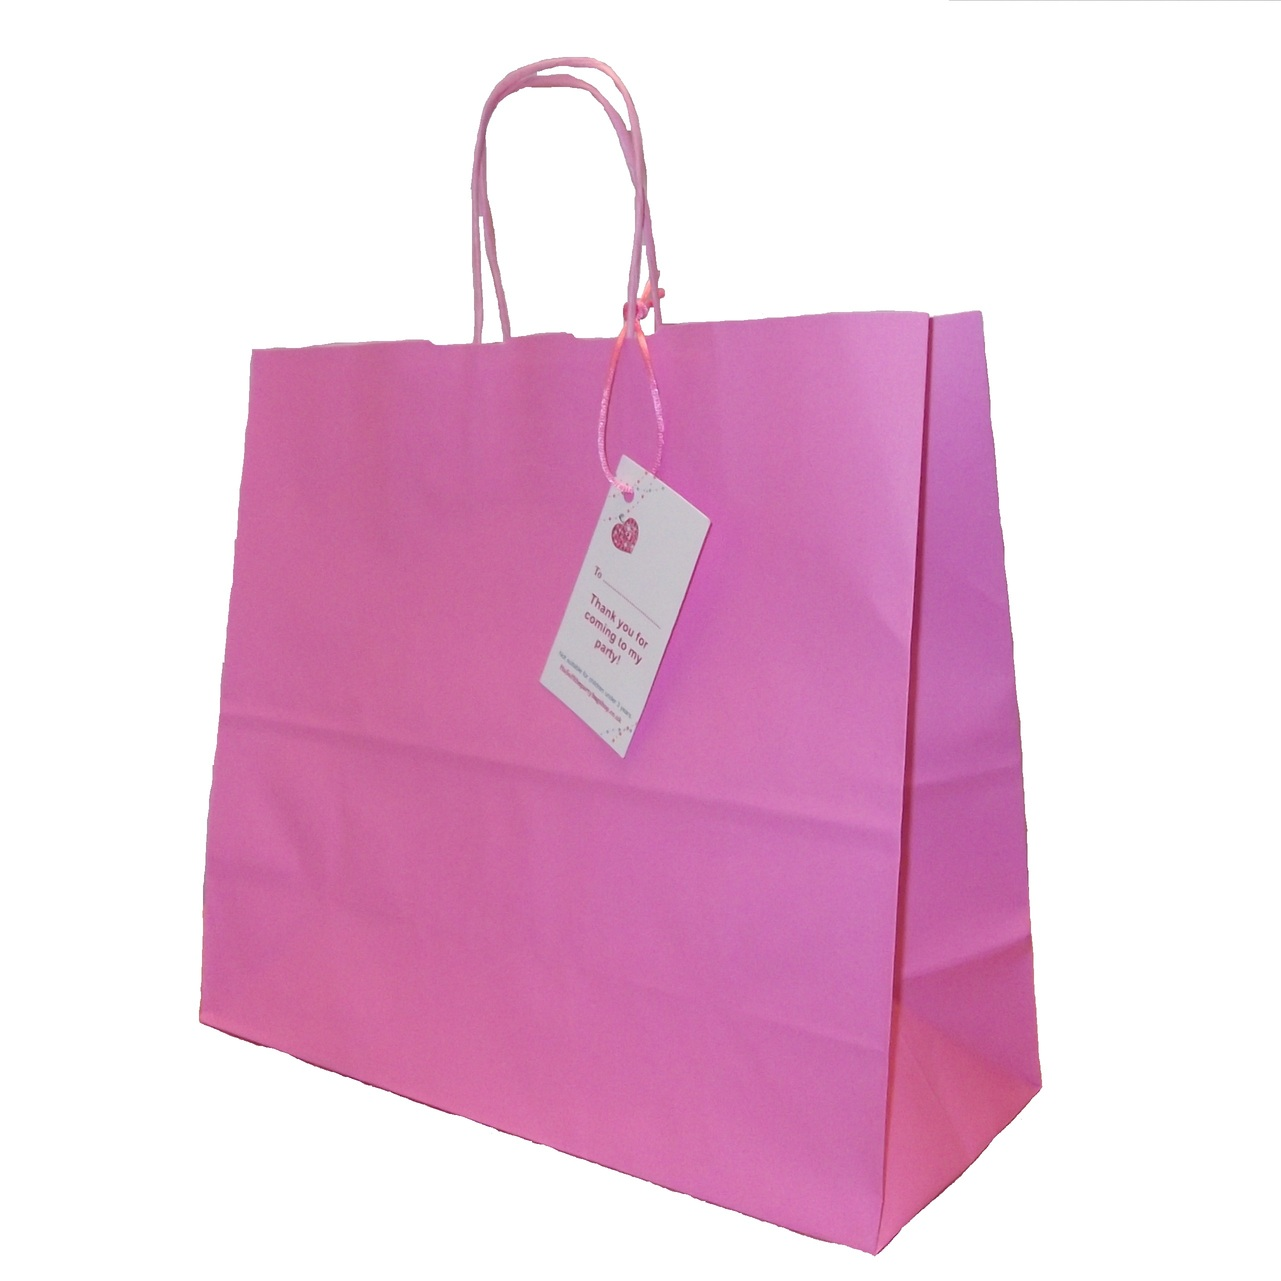 Large Paper Party Bag Pink With Handles Size 32x28x13 Cm